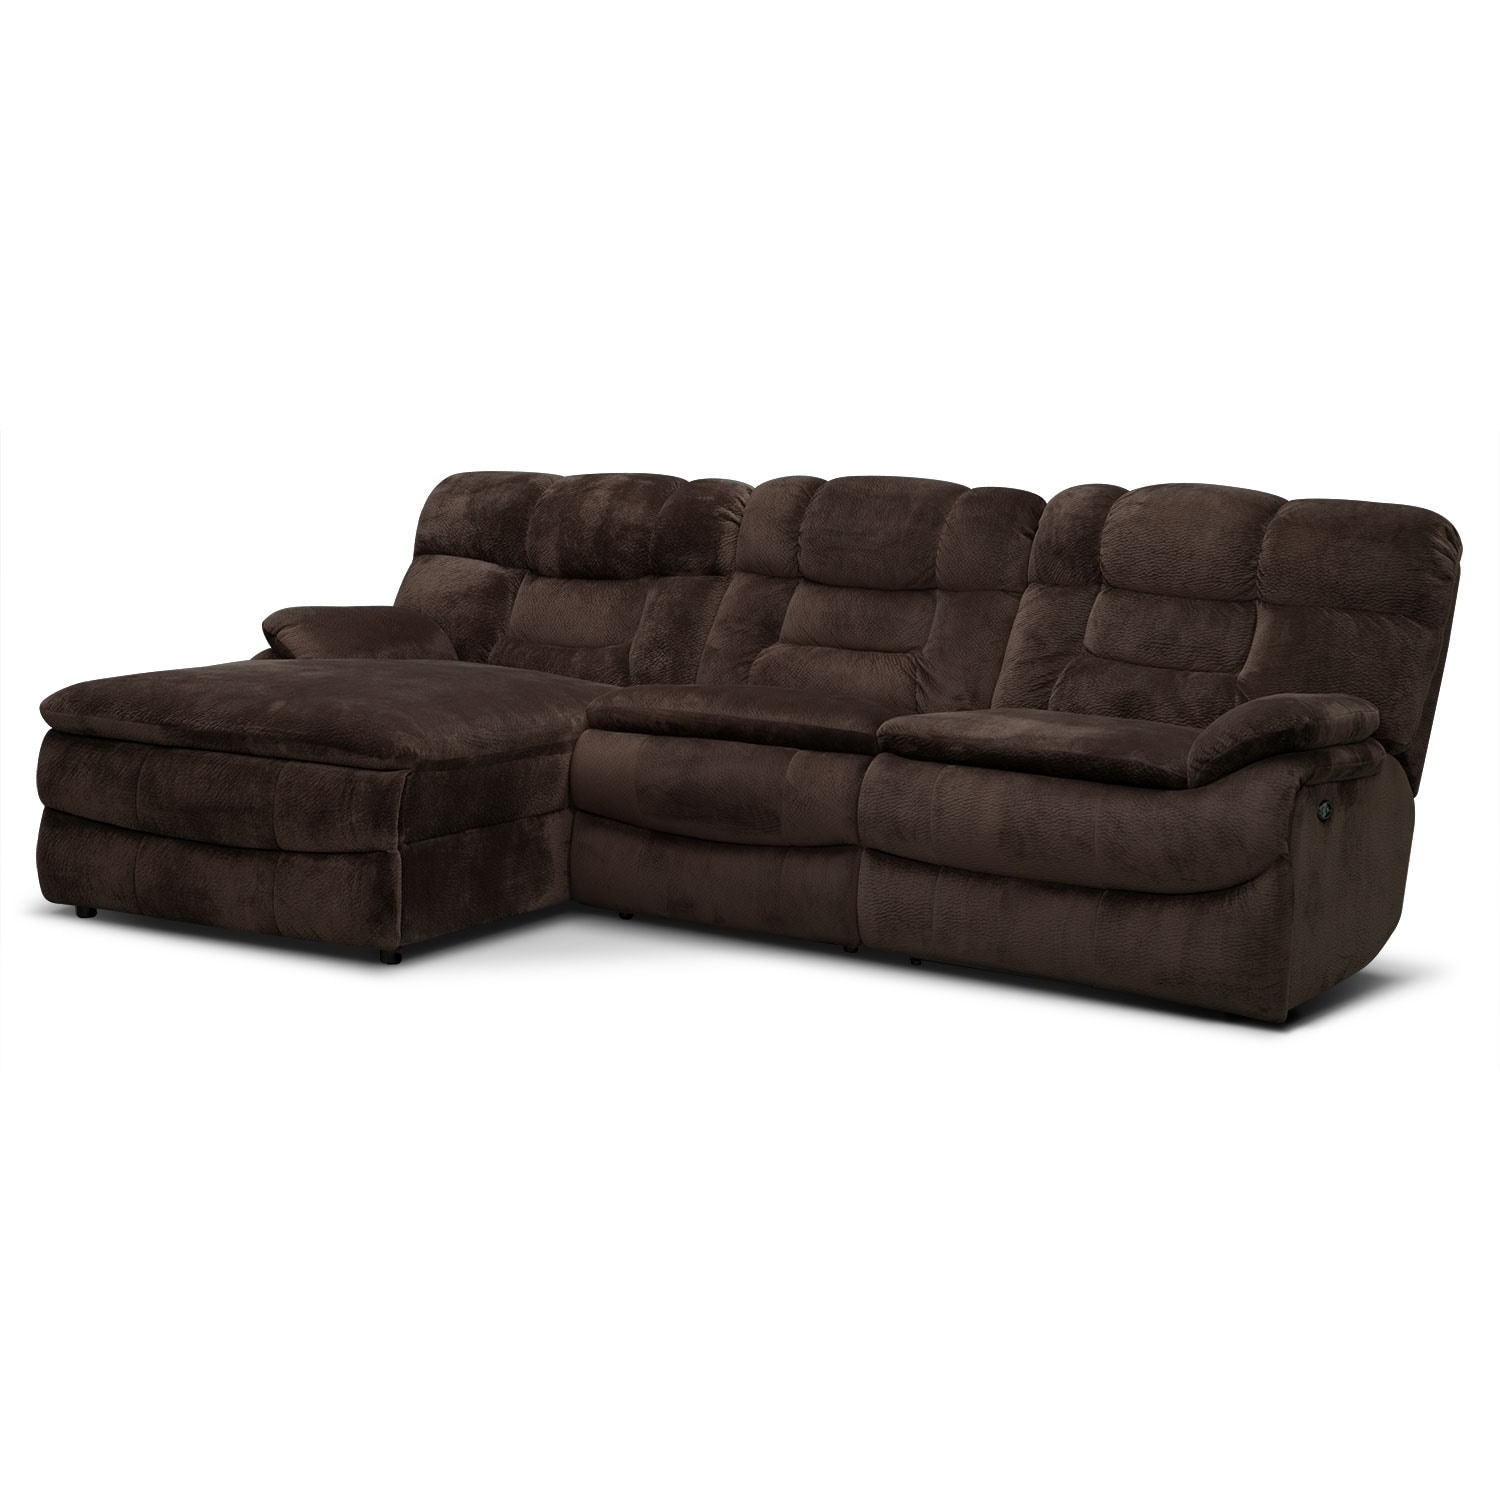 Big Softie 3-Piece Power Reclining Sectional with Left-Facing Chaise - Chocolate